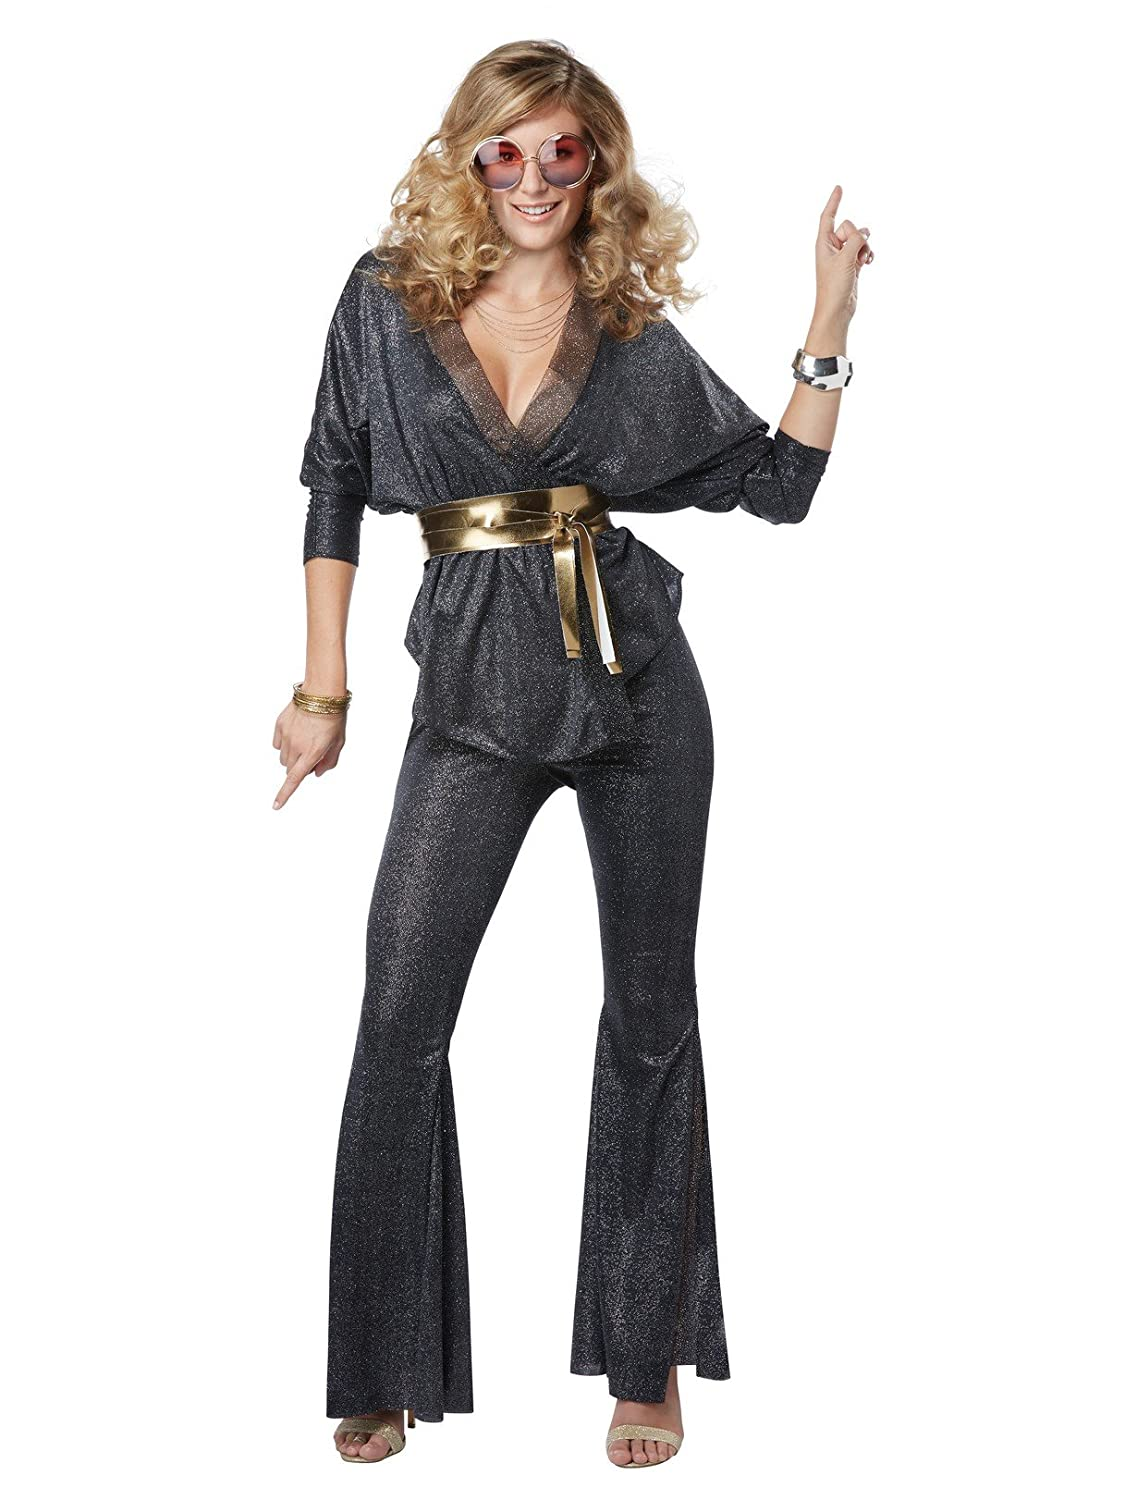 Hippie Pants, Jeans, Bell Bottoms, Palazzo, Yoga Dazzler Disco Costume for Adults $29.13 AT vintagedancer.com